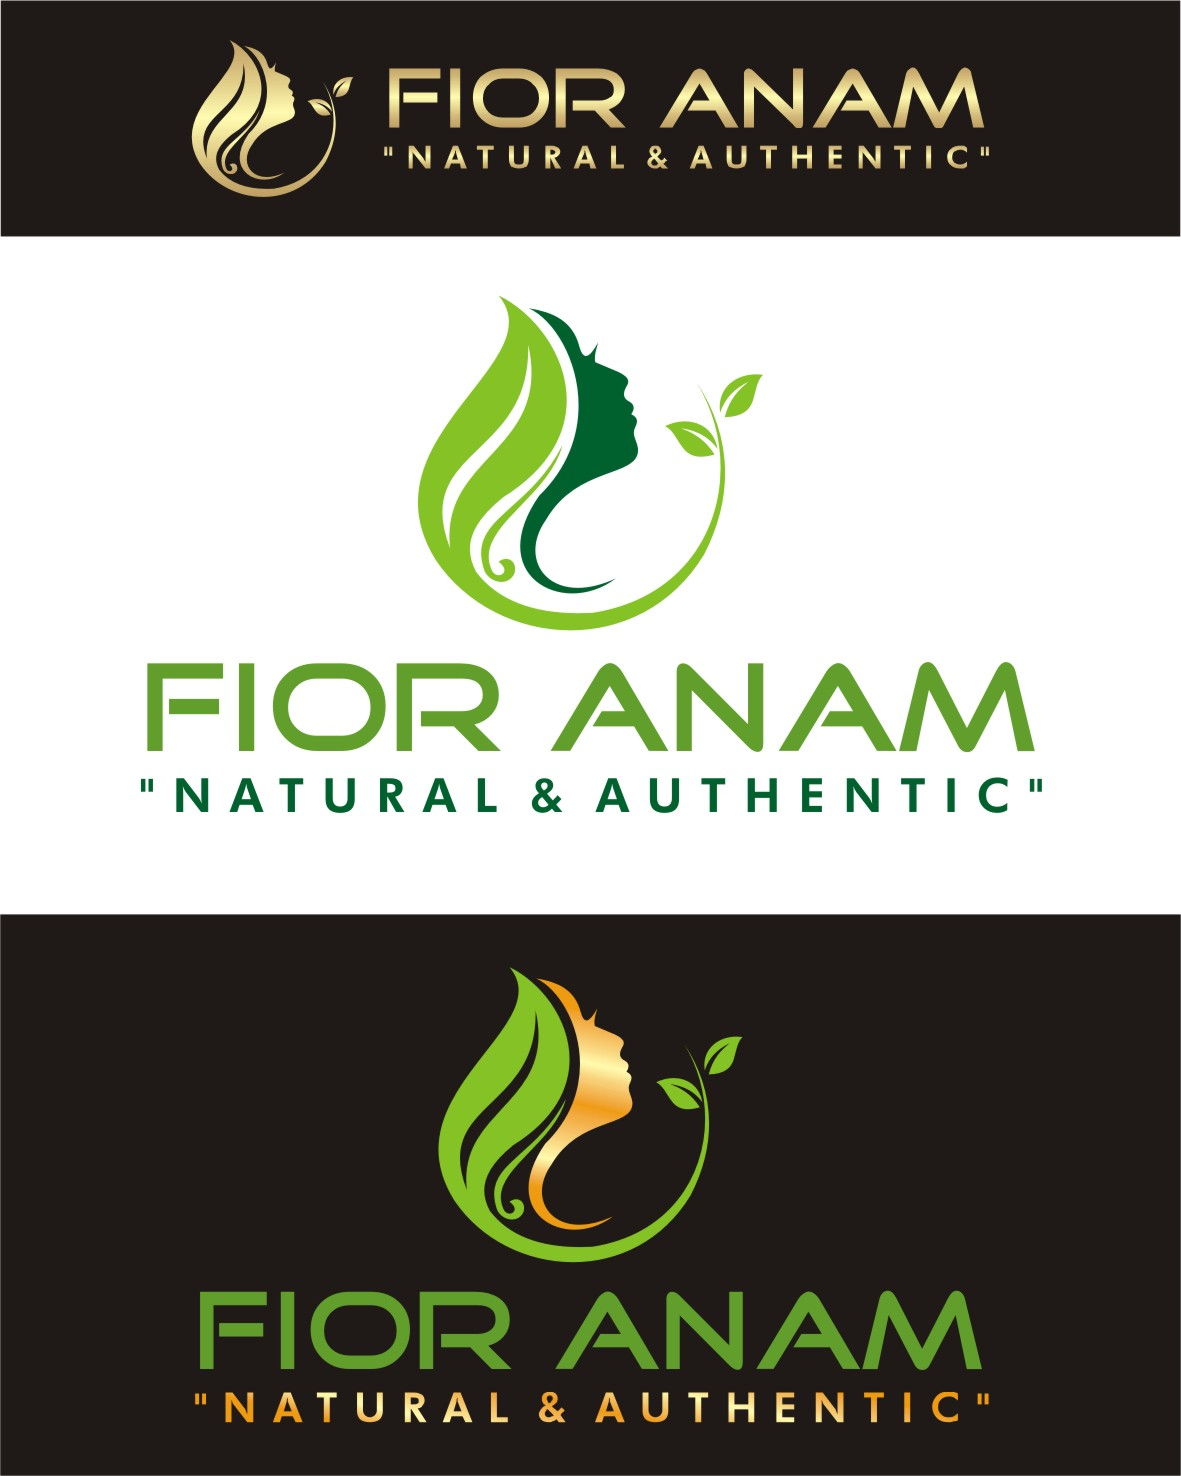 Logo Design by Lynx Graphics - Entry No. 394 in the Logo Design Contest Creative Logo Design for Fior Anam.